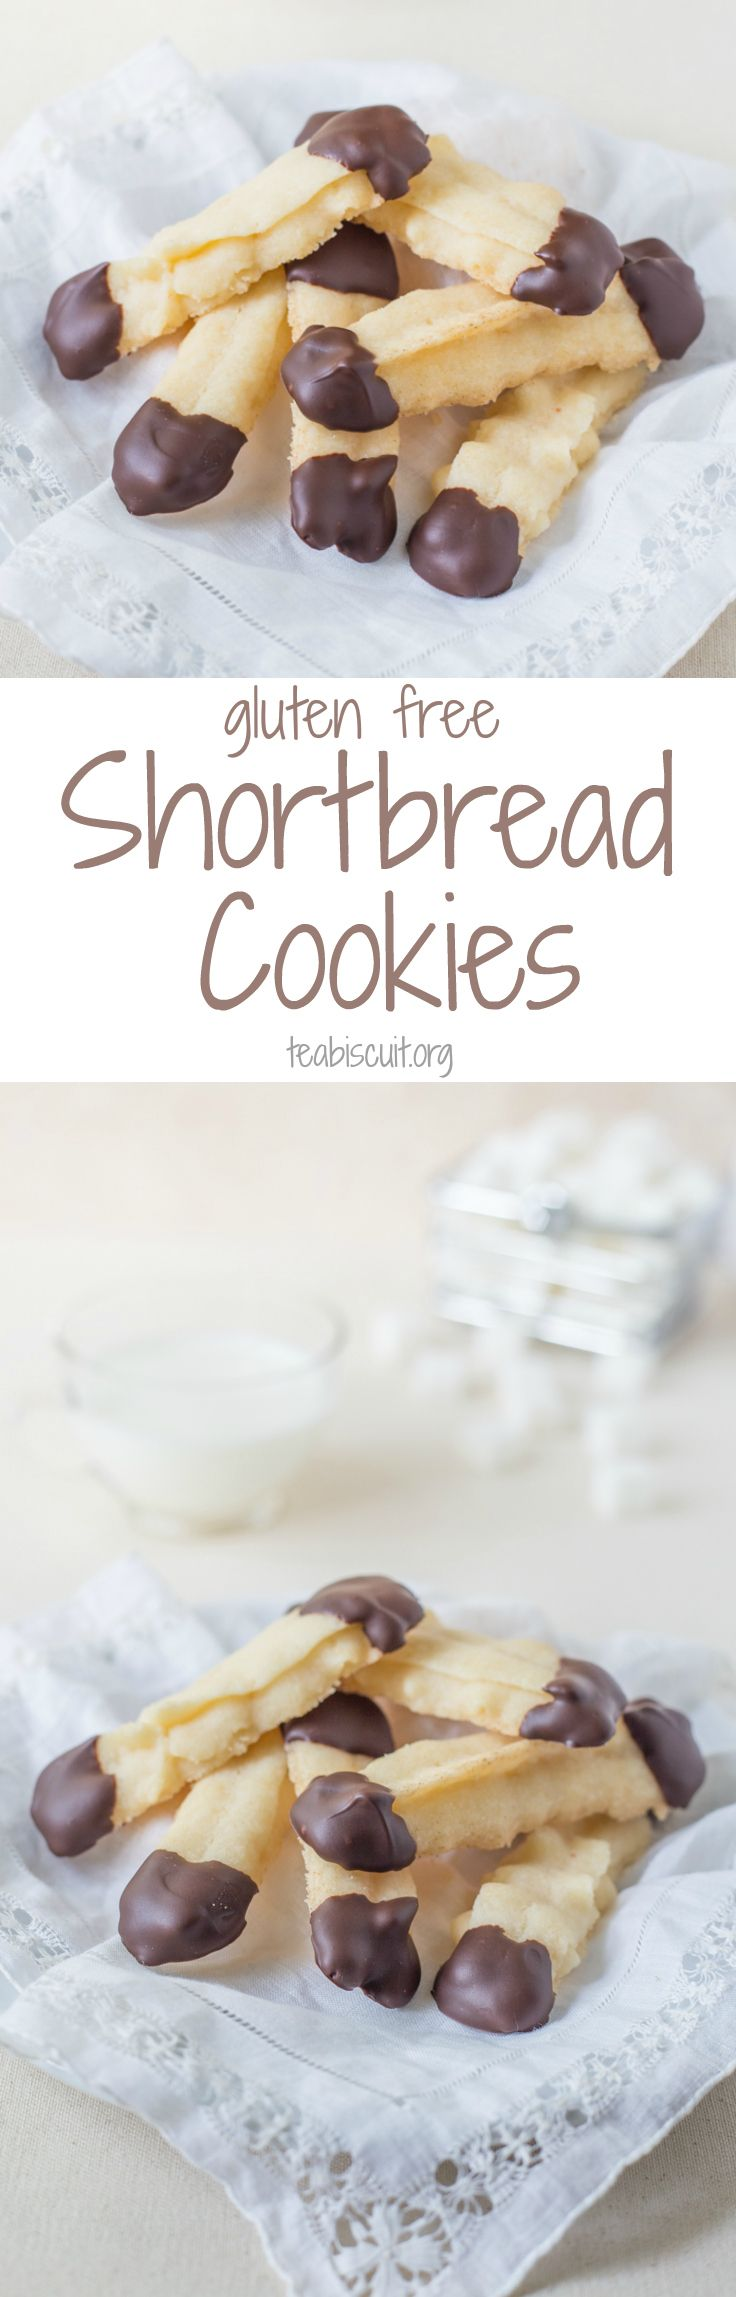 Gluten Free Shortbread Cookie - vegan, easy and dipped in Chocolate! Contains no eggs, gluten, dairy, soy or nuts!